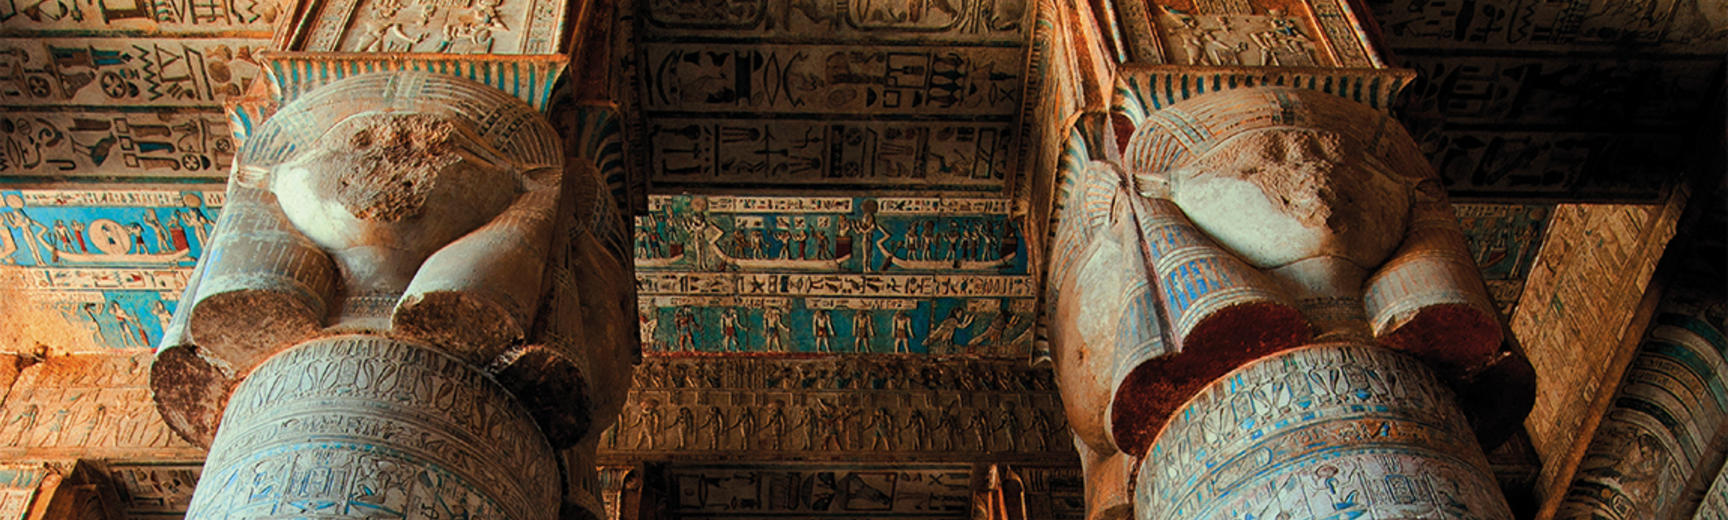 Looking up to the top of columns in an ancient egyptian temple